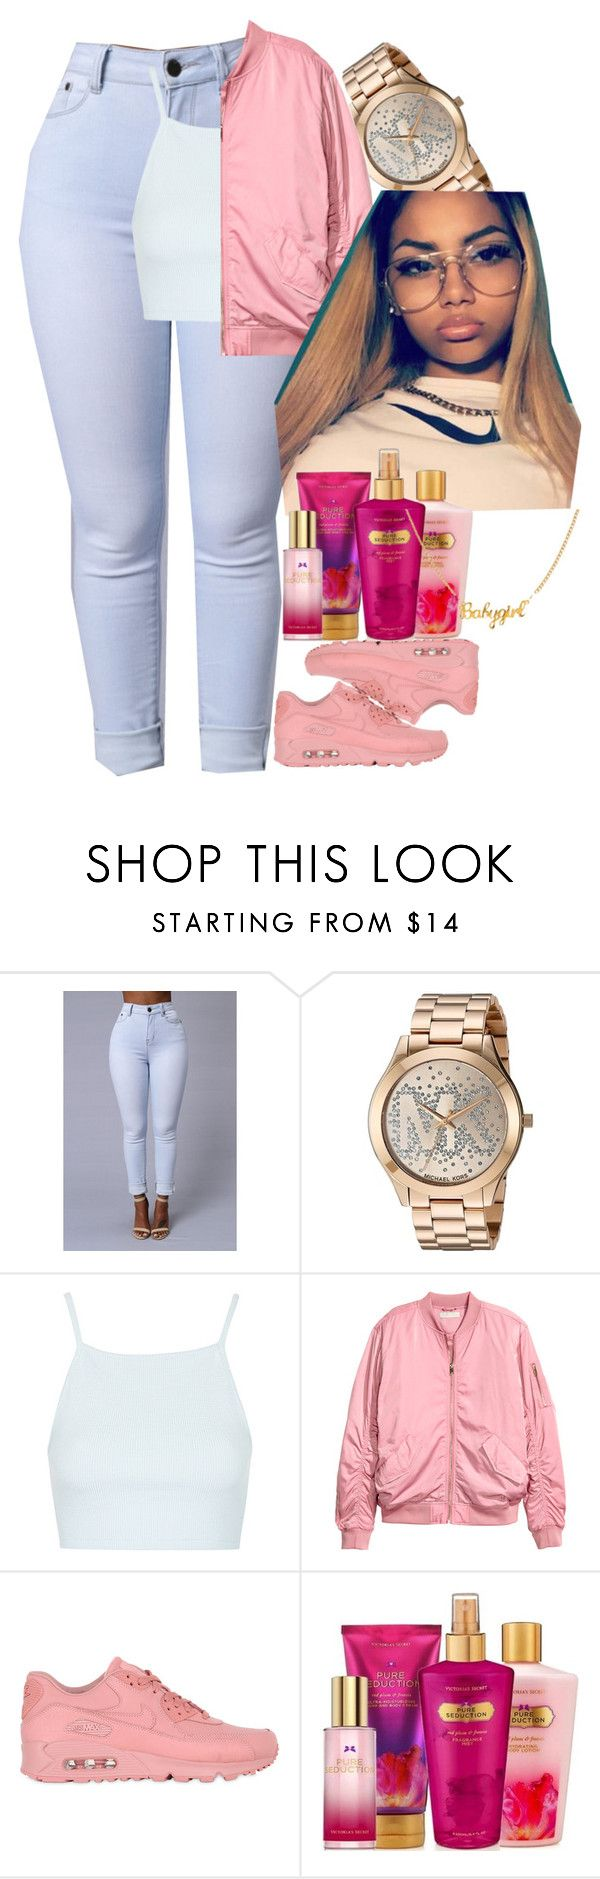 """""""Pink"""" by shecutetho ❤ liked on Polyvore featuring Michael Kors, Topshop, H&M, NIKE and Victoria's Secret"""